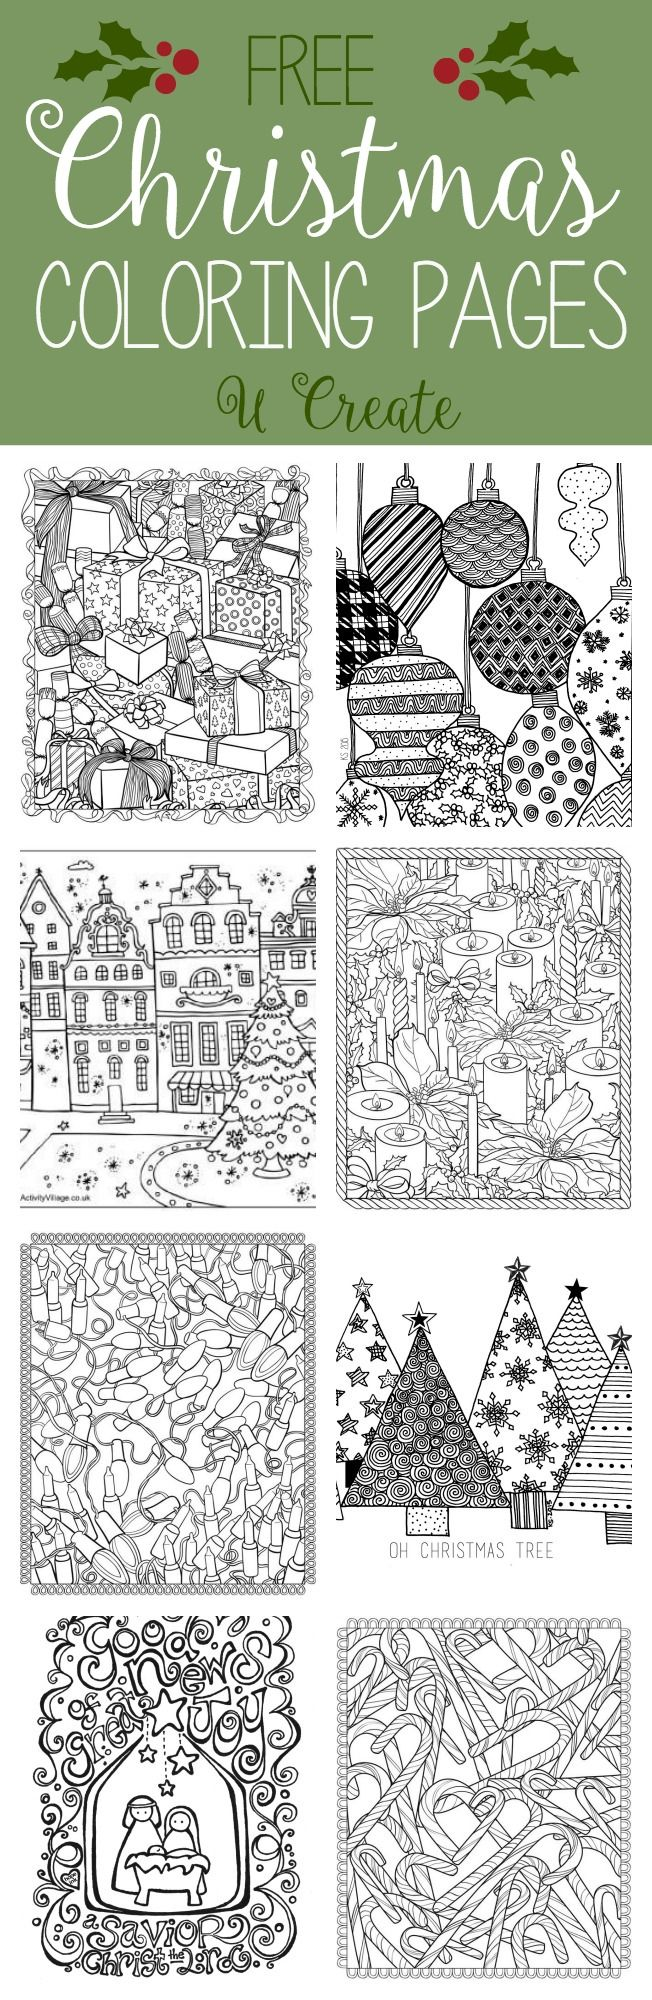 Free Printable Vintage Christmas Coloring Pages With 1101 Best Cosas Para Pintar Images On Pinterest Books